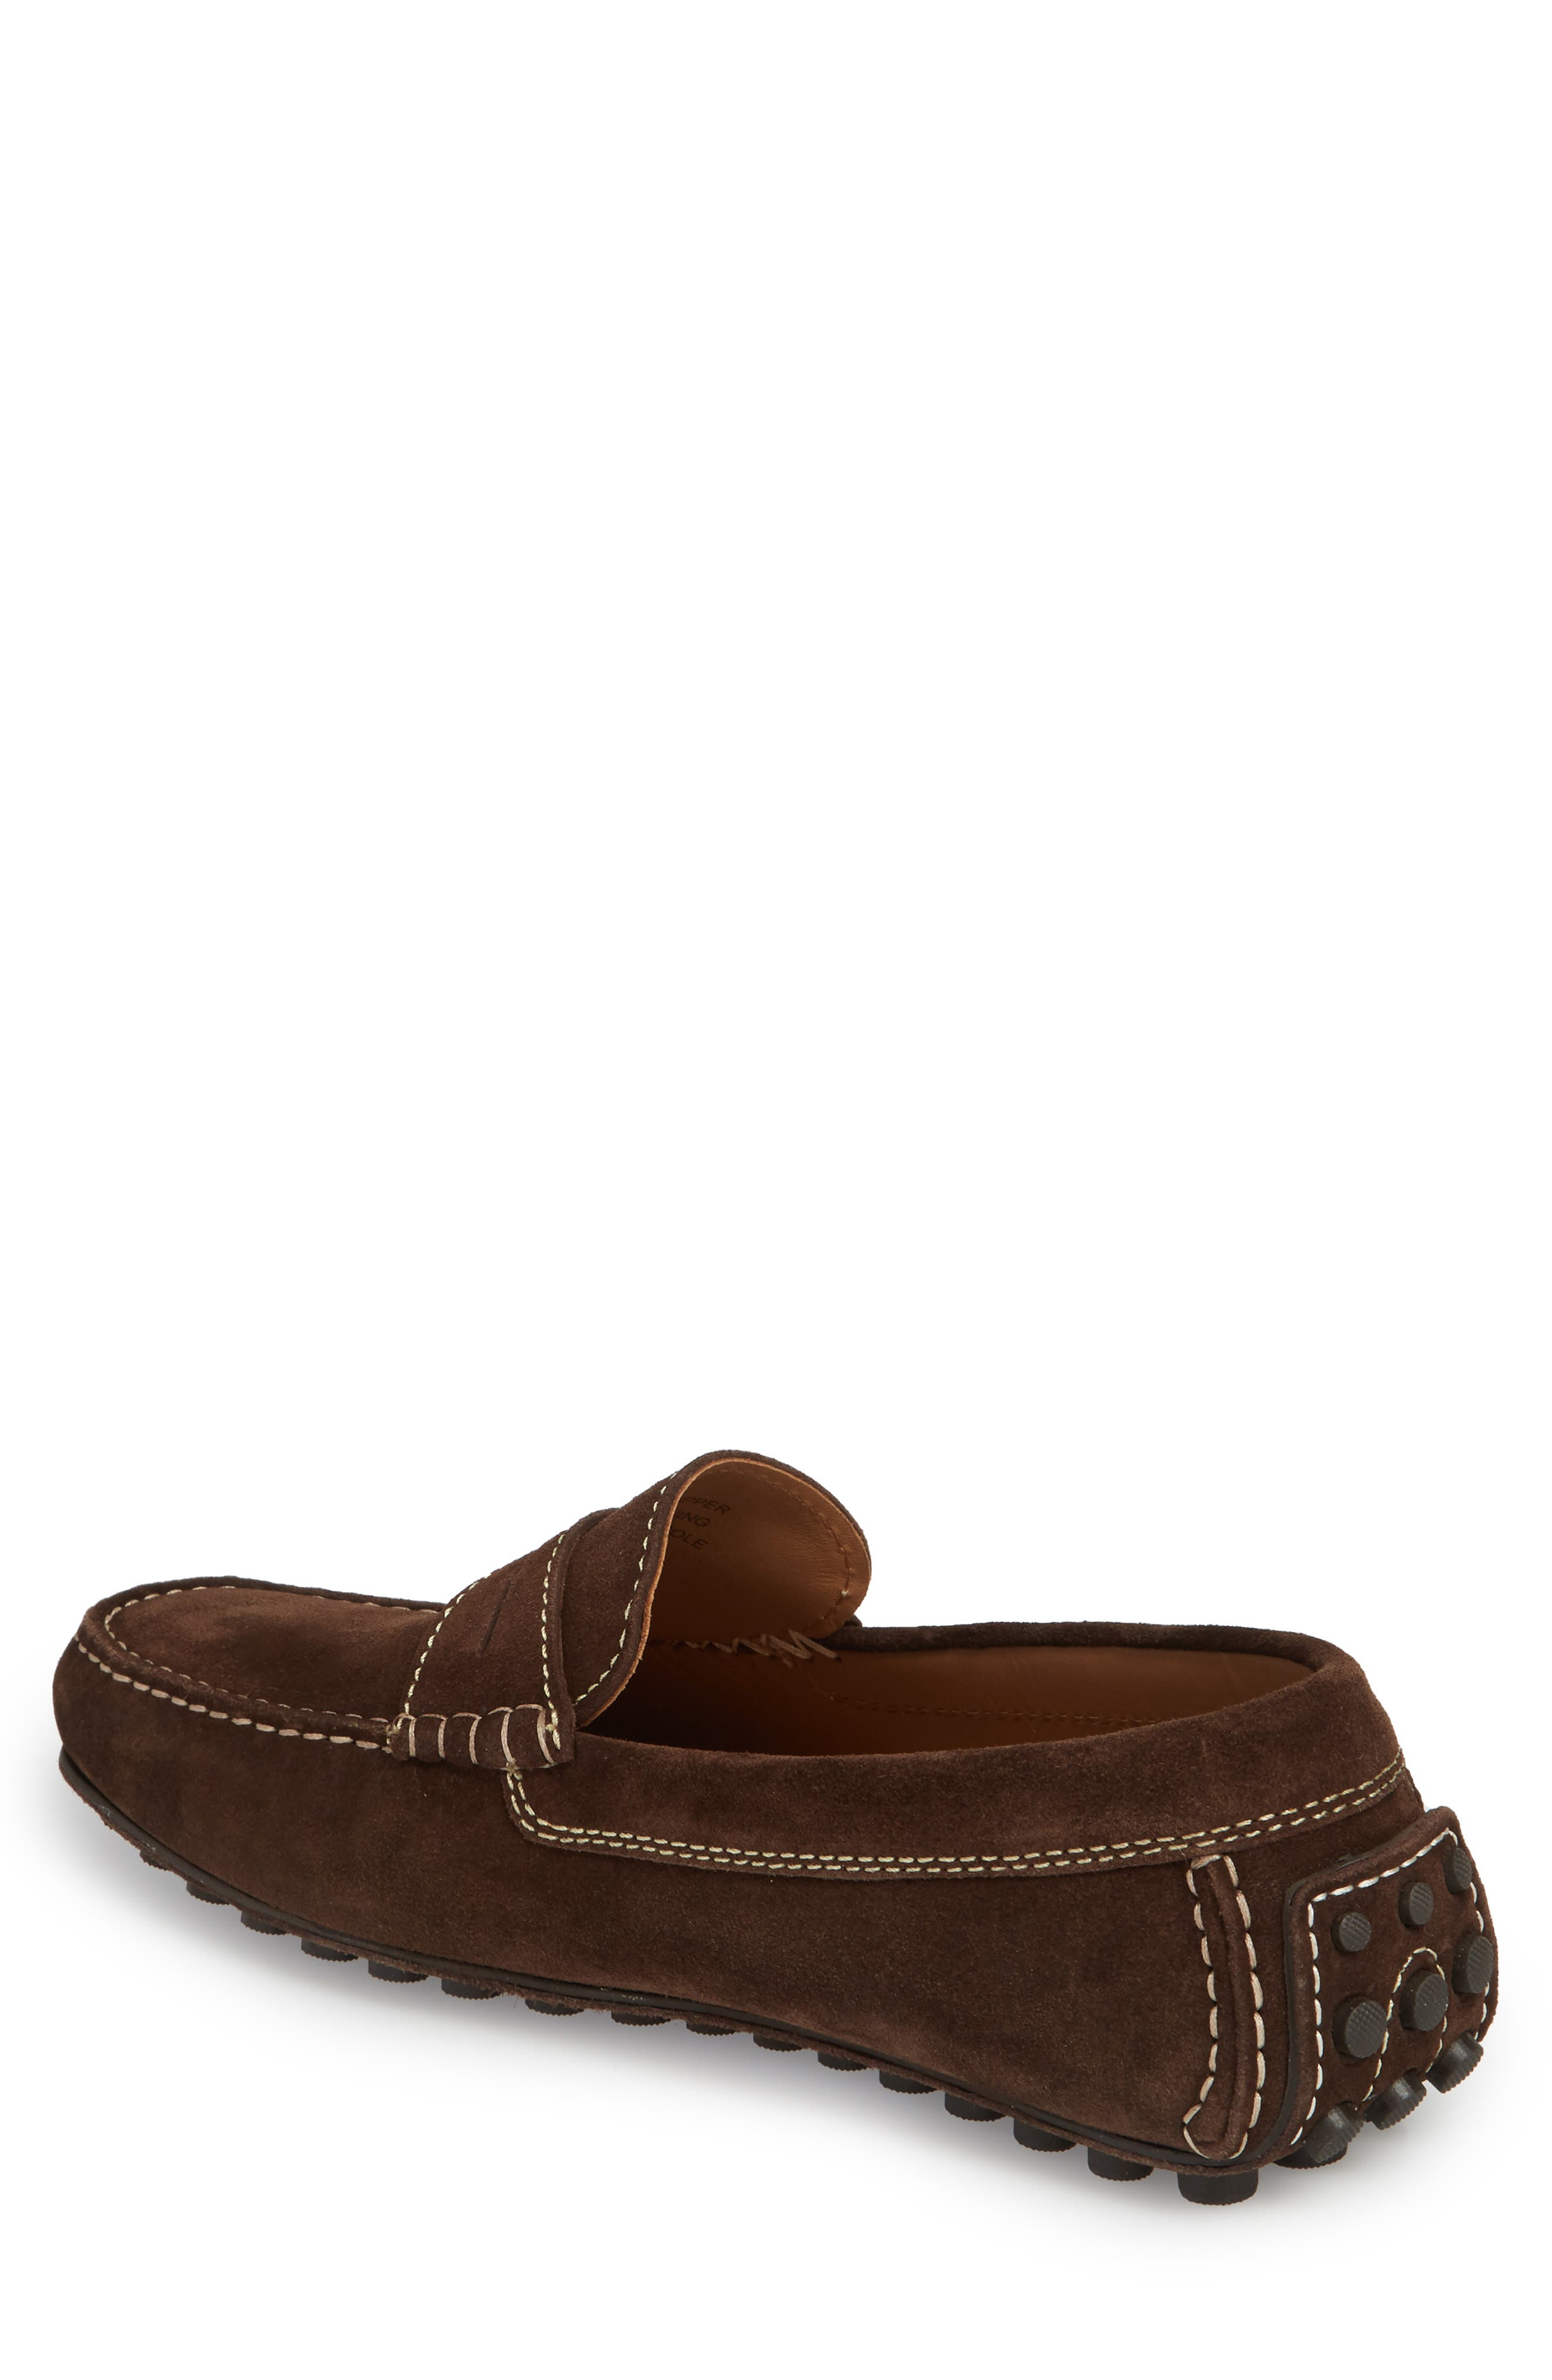 Le Mans Penny Driving Loafer,                             Alternate thumbnail 2, color,                             CHOCOLATE